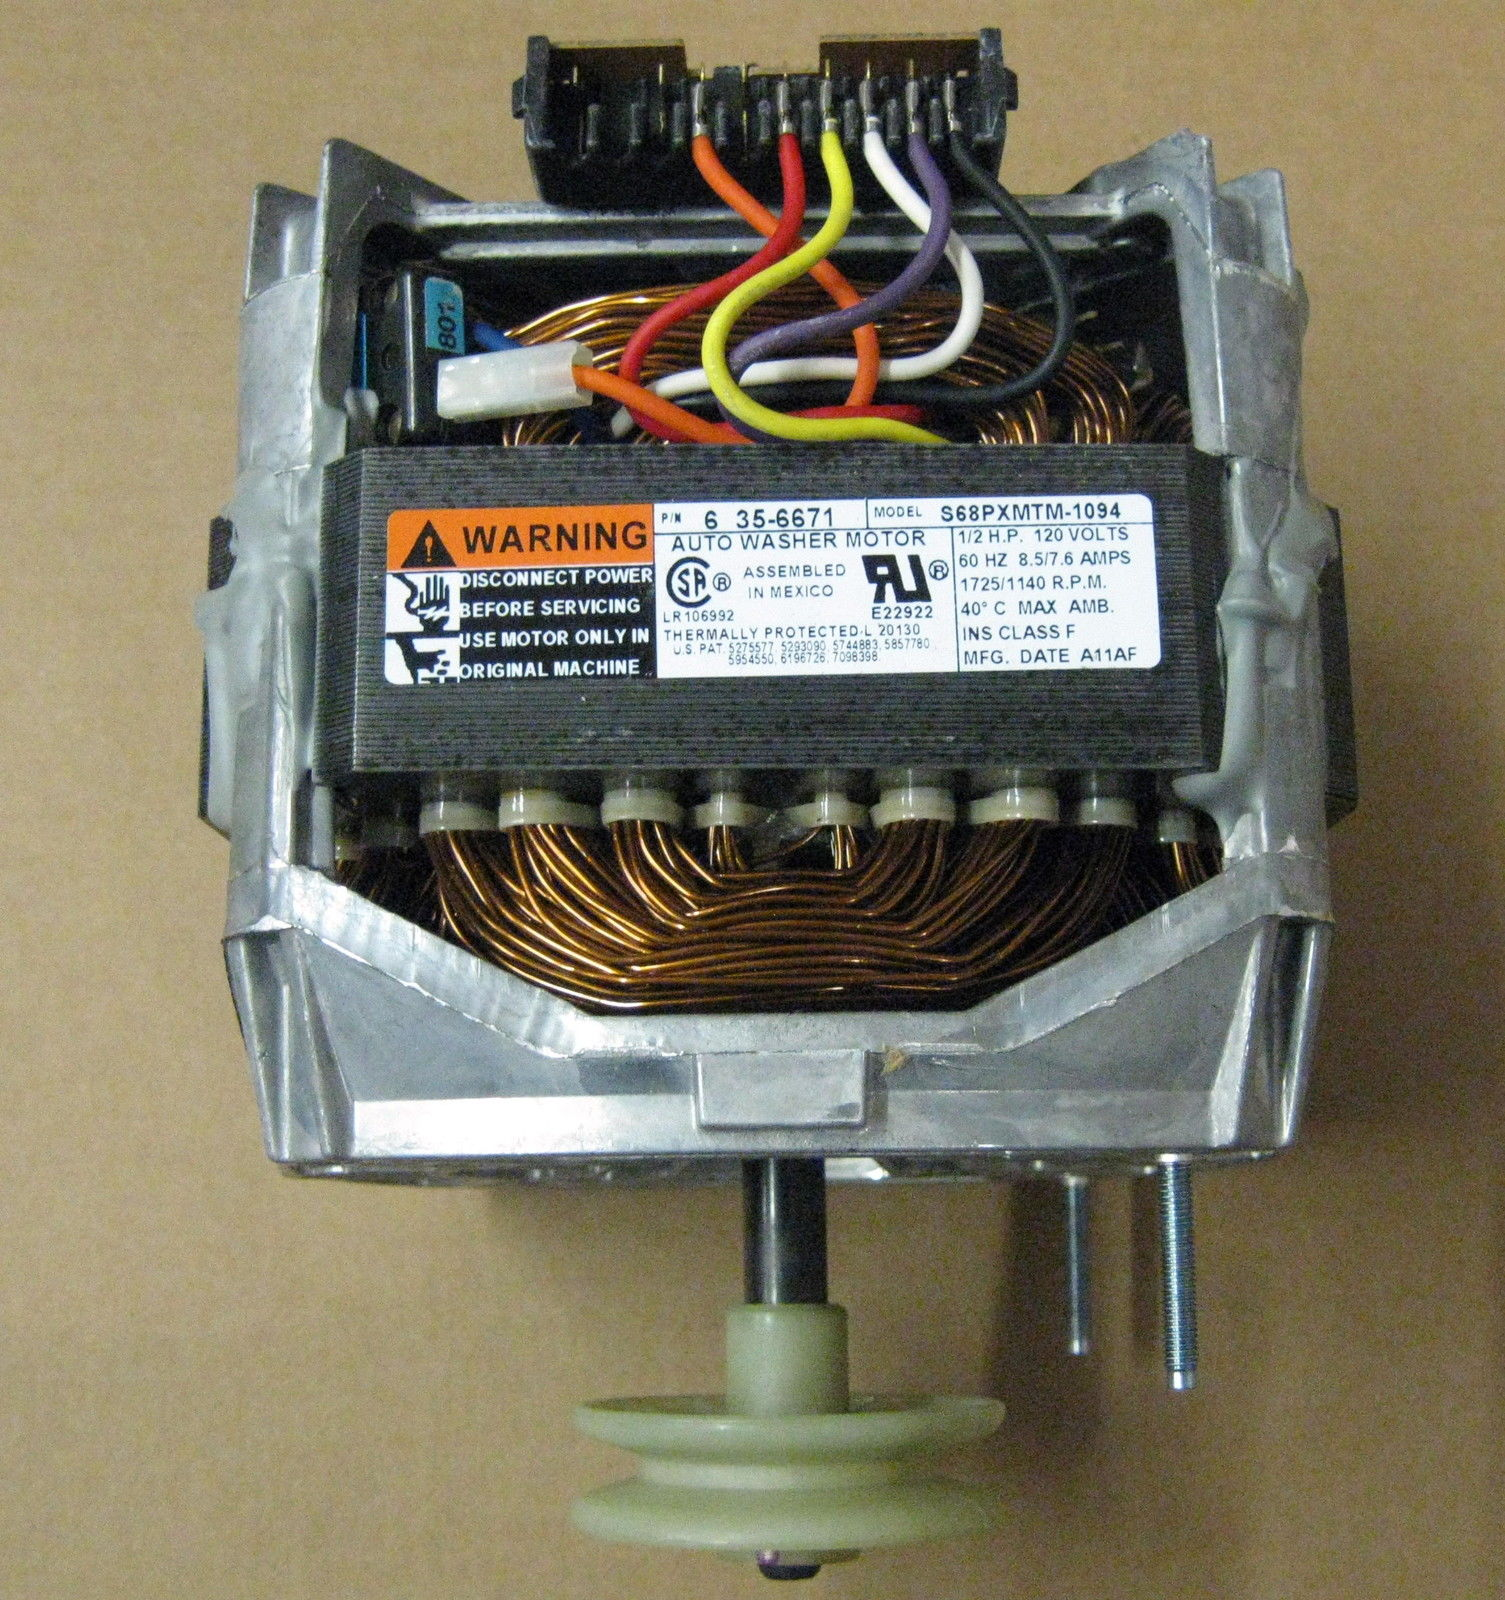 Wp21001950 Genuine Whirlpool Fsp Maytag Washer Washing Machine Motor Straight A Wiring 35 6671